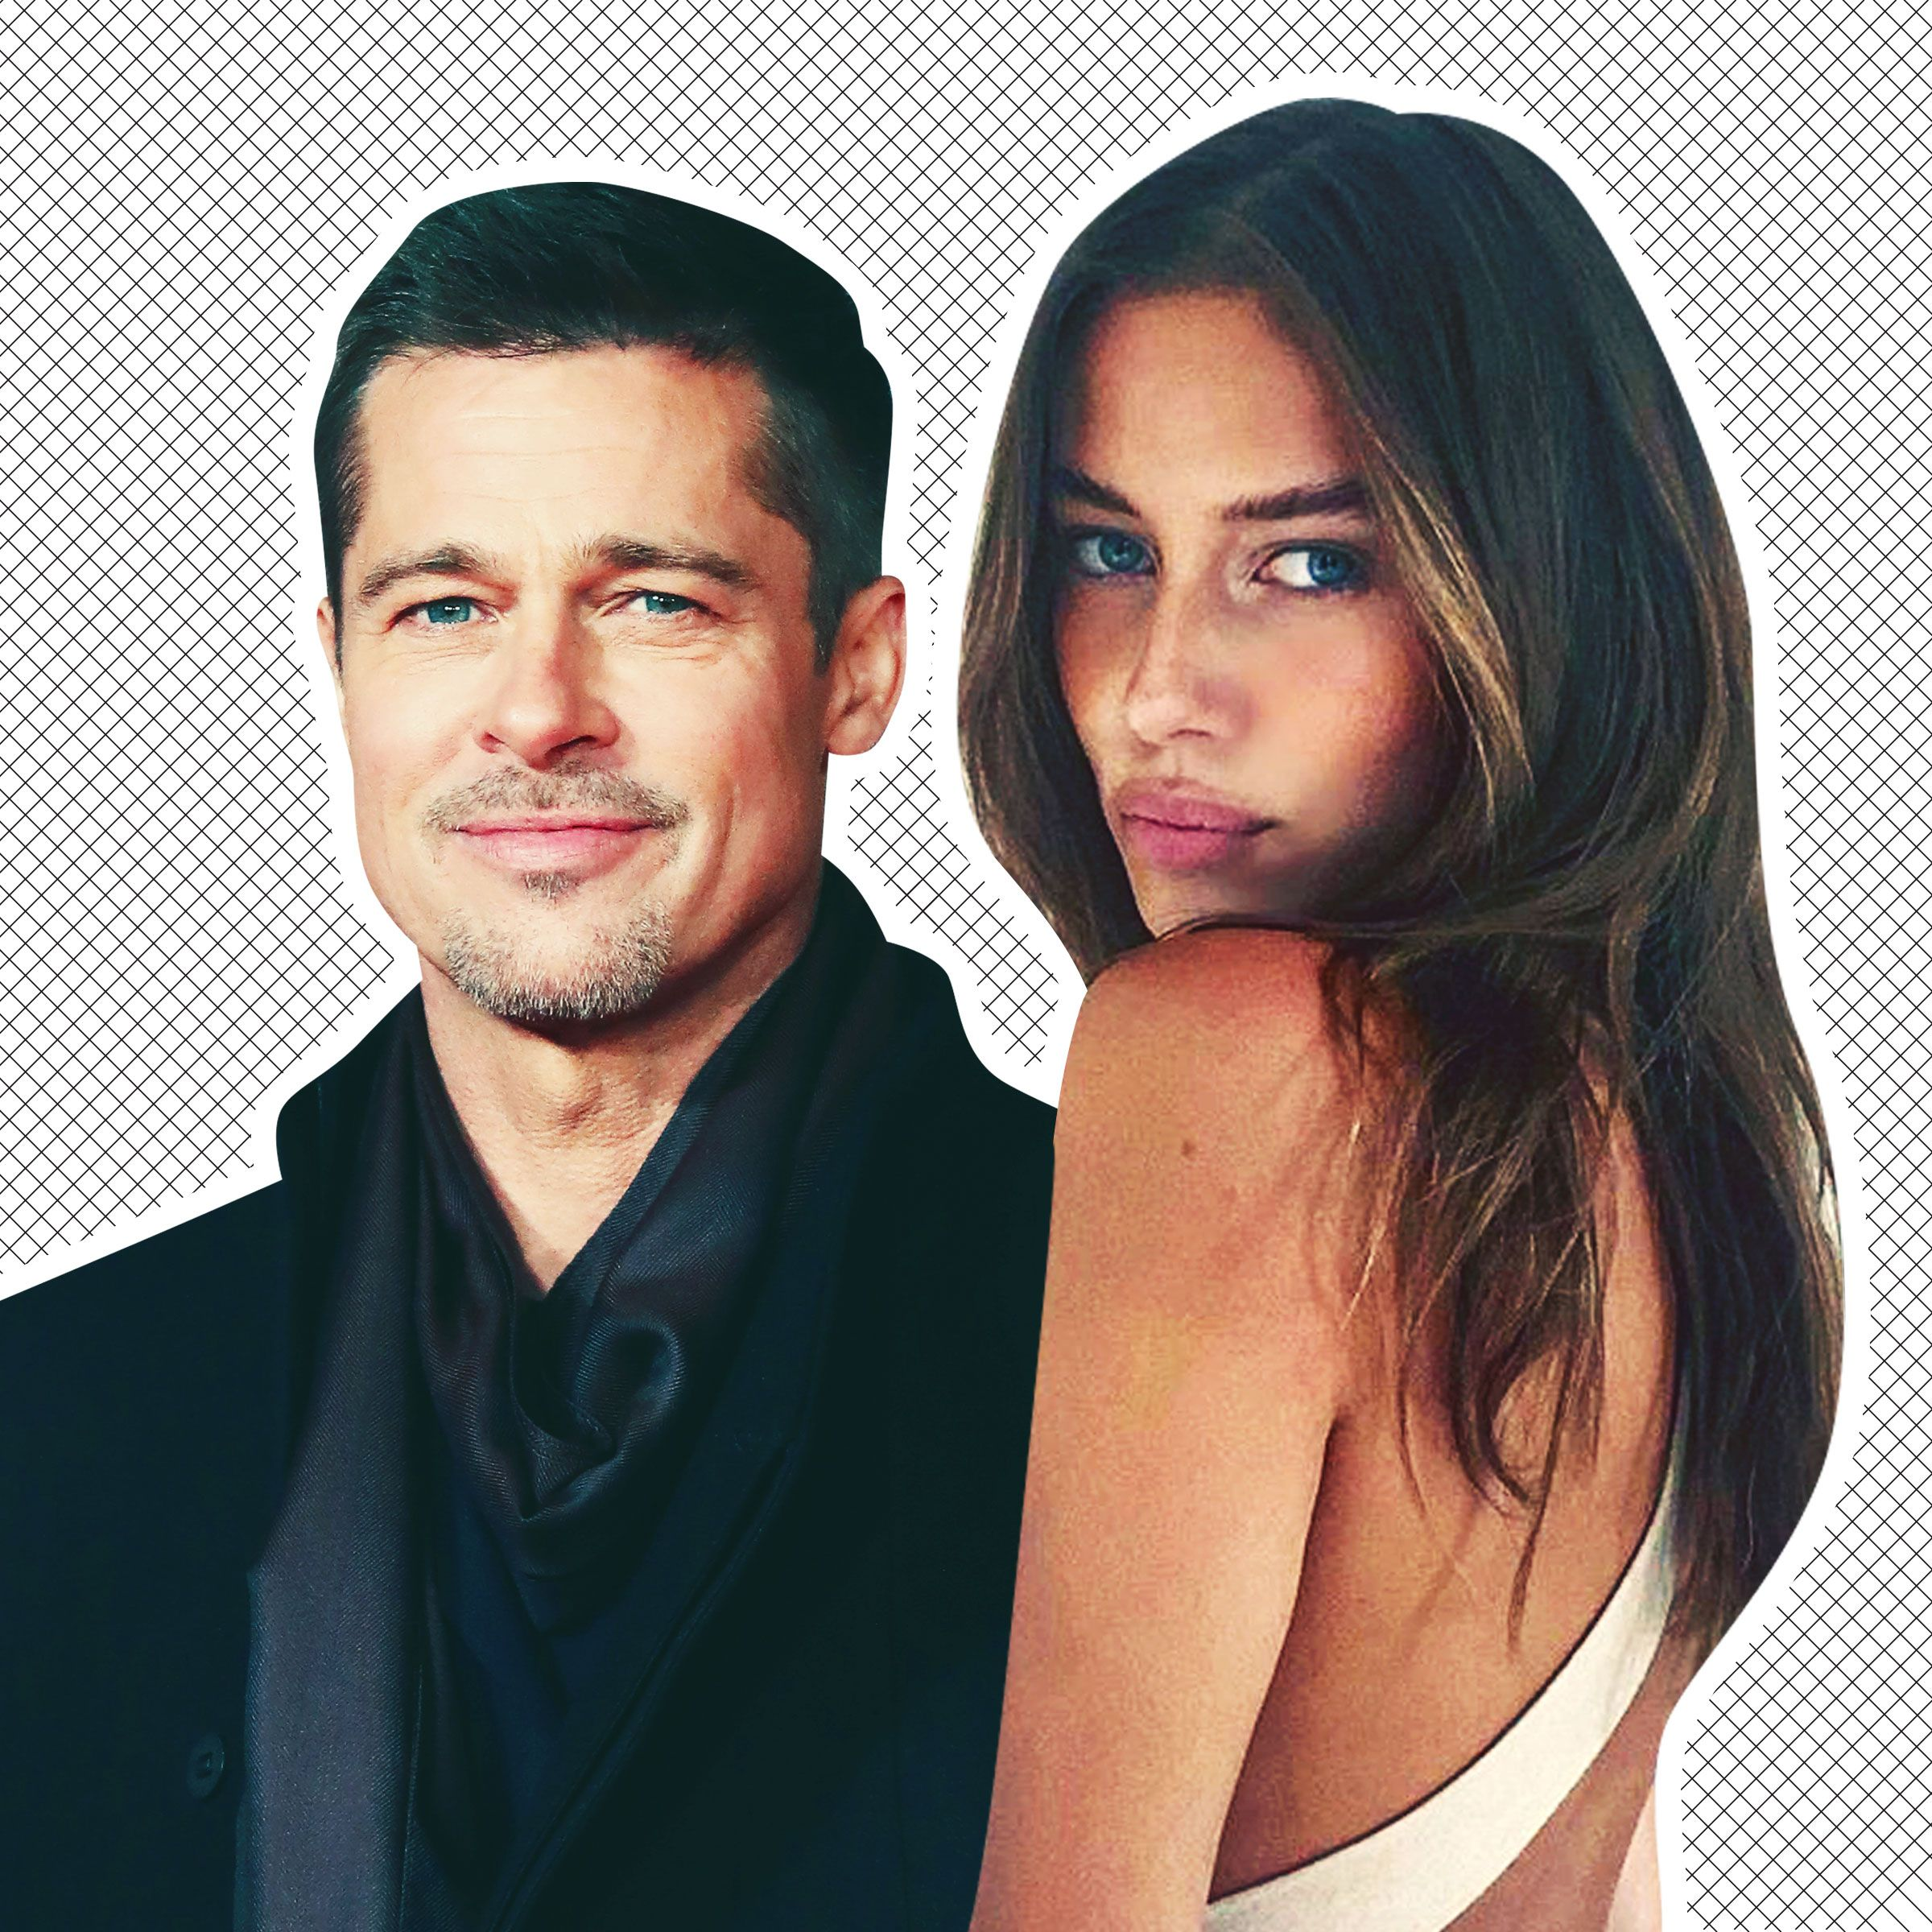 Brad Pitt Spotted With New Girlfriend Nicole Poturalksi